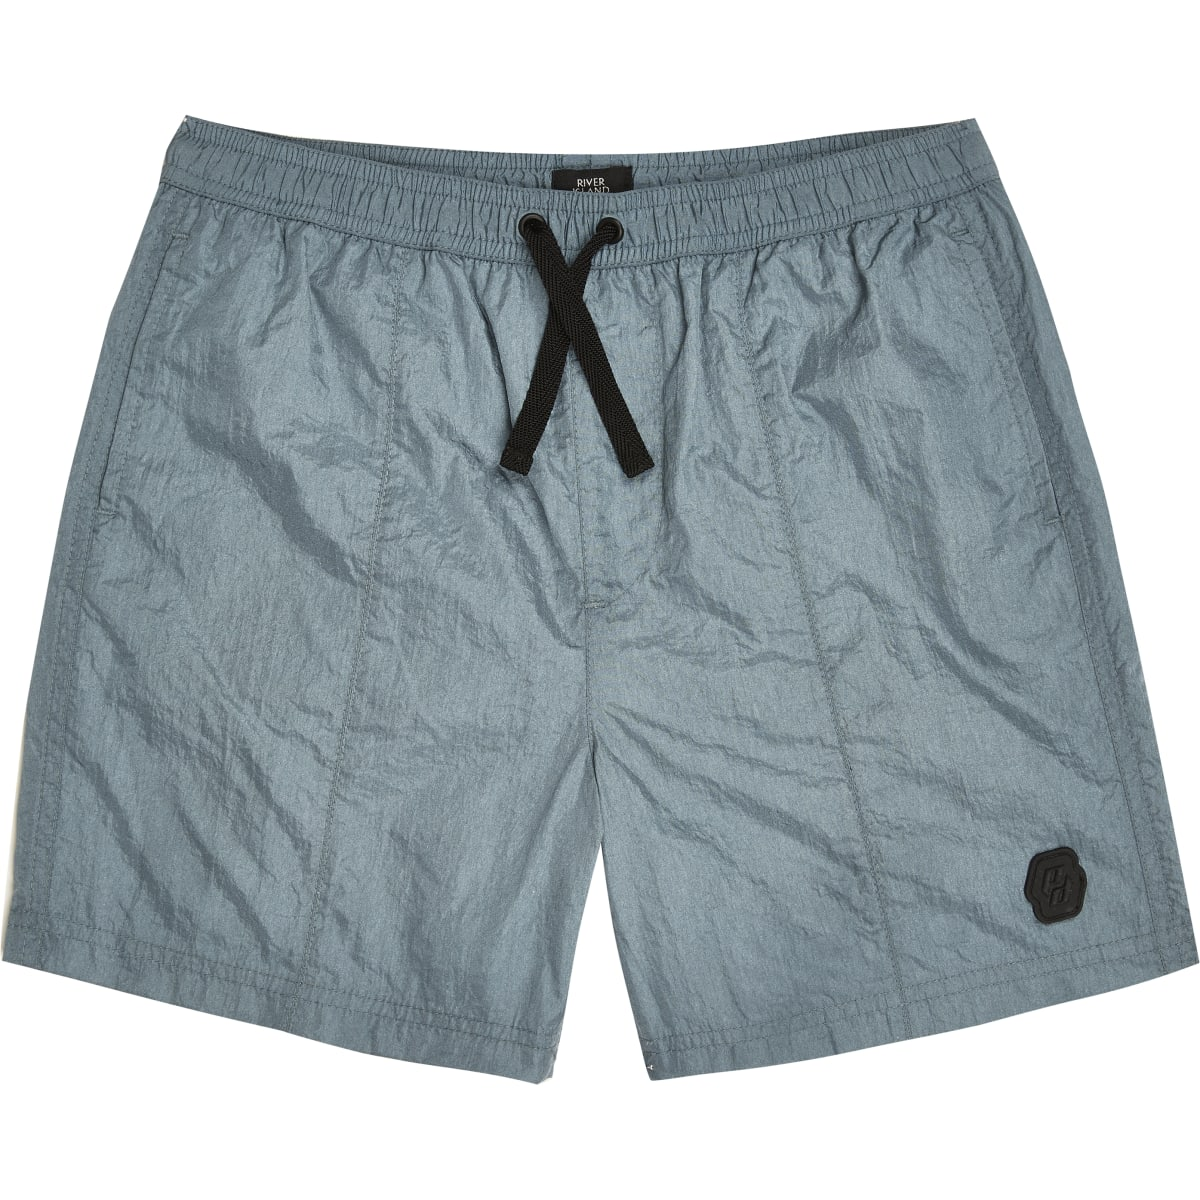 Boys blue nylon shorts